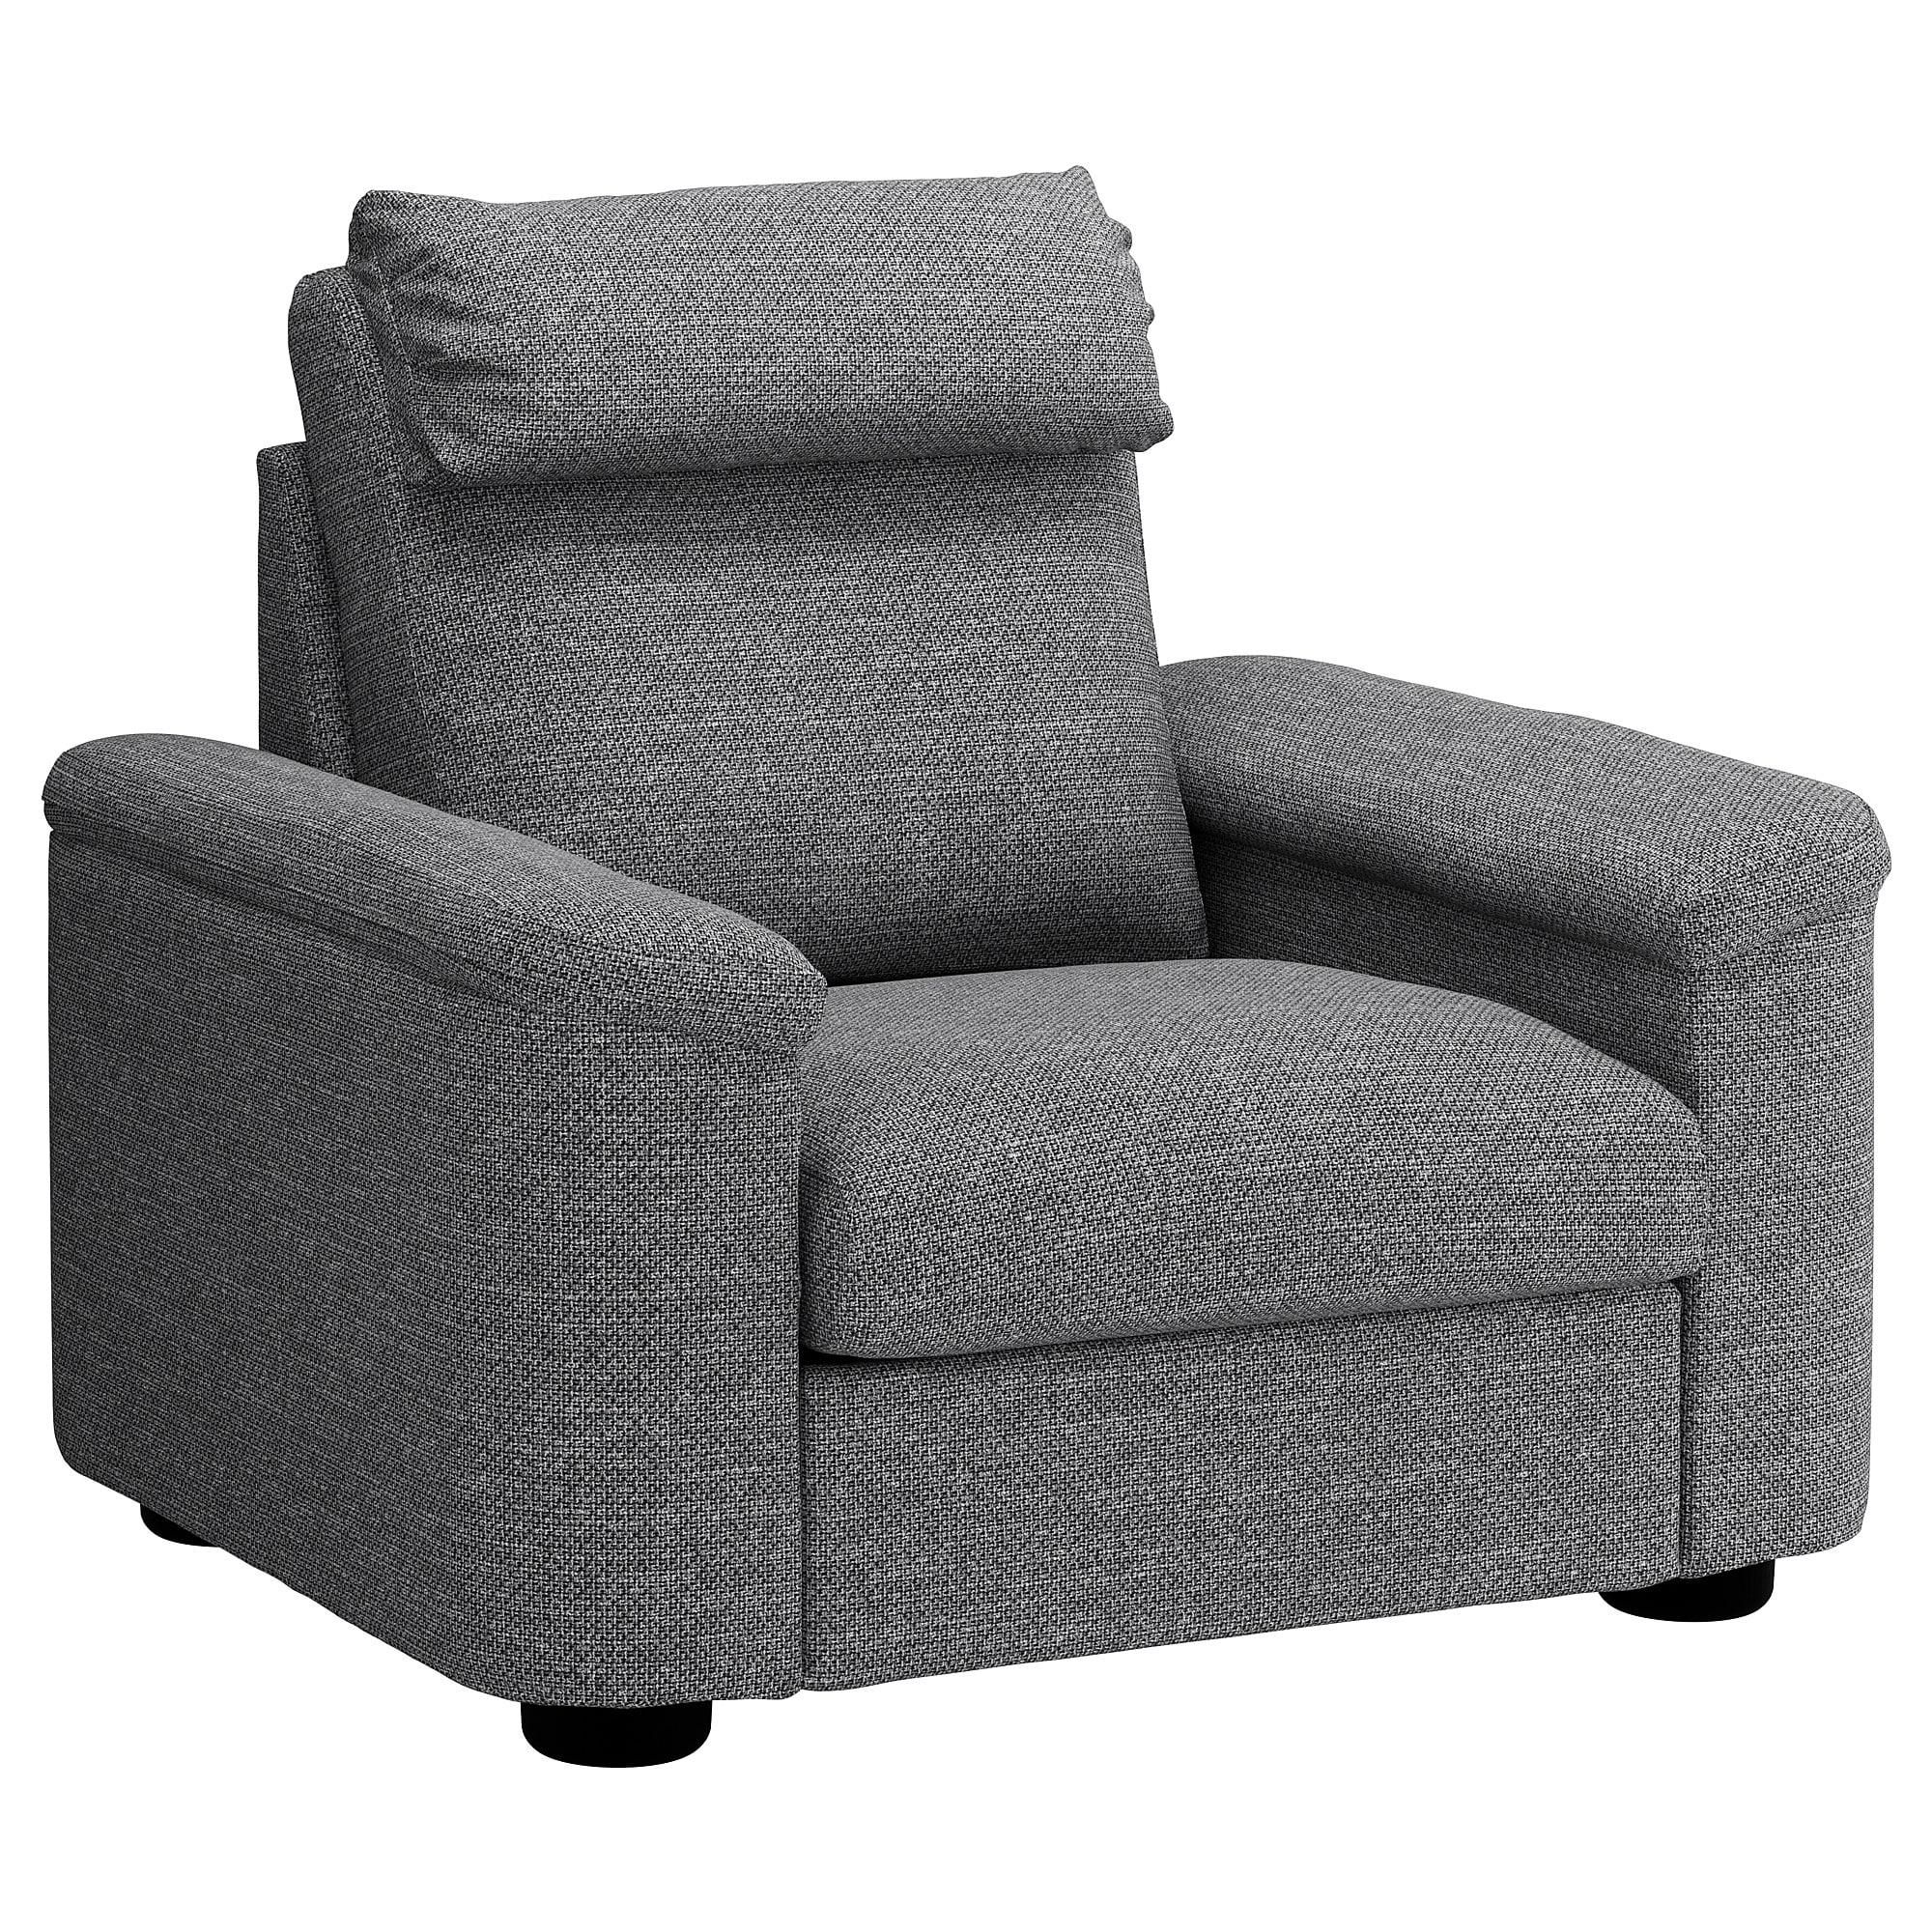 Ikea With Most Popular Sofa Chair Recliner (Gallery 16 of 20)